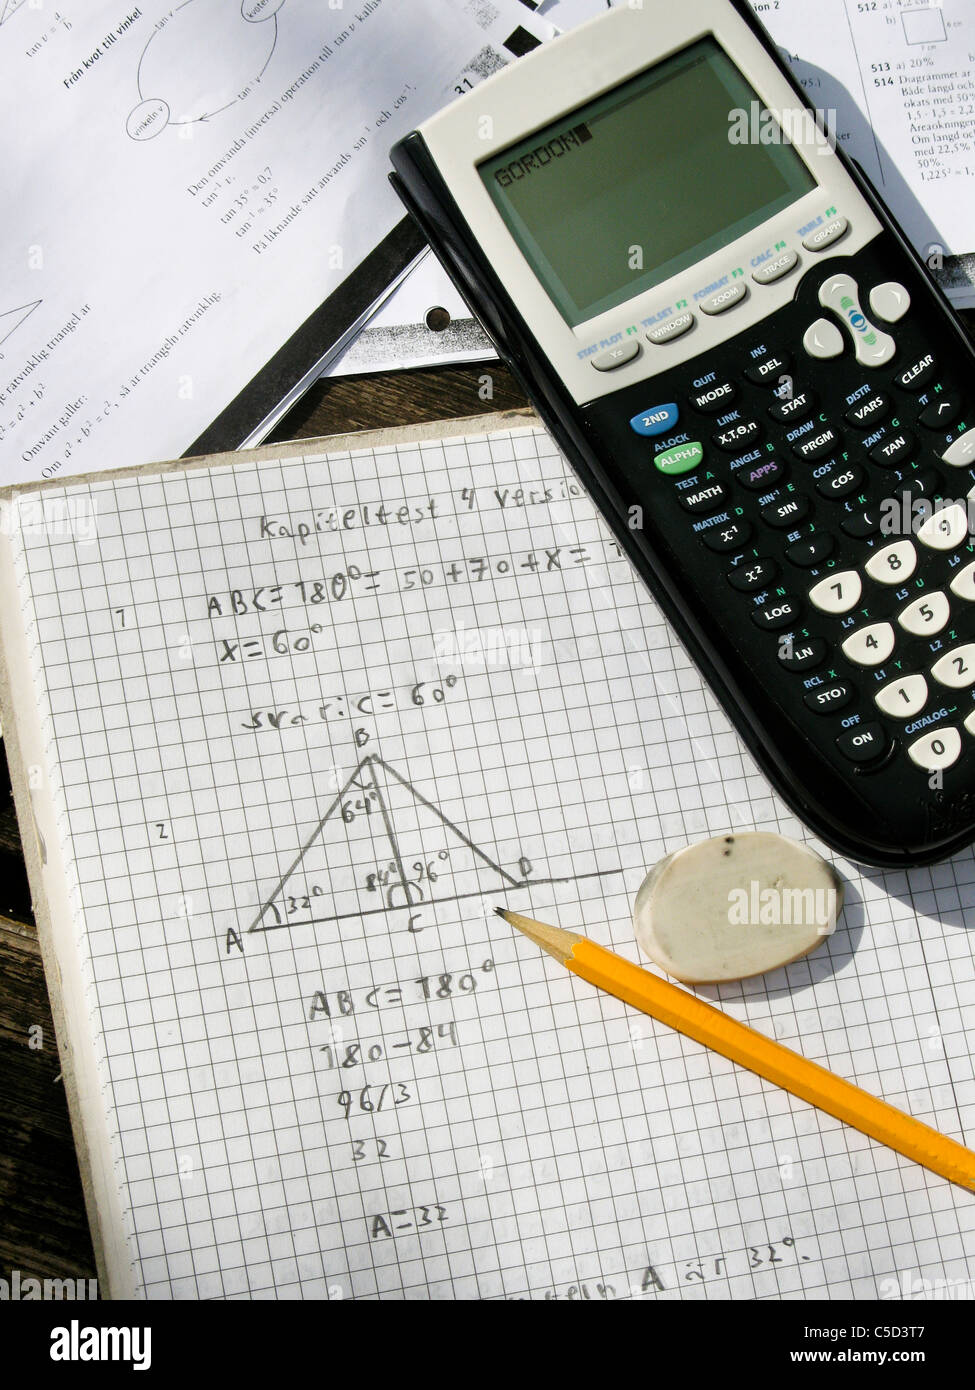 Close-up of a calculator with pencil and digits in book - Stock Image